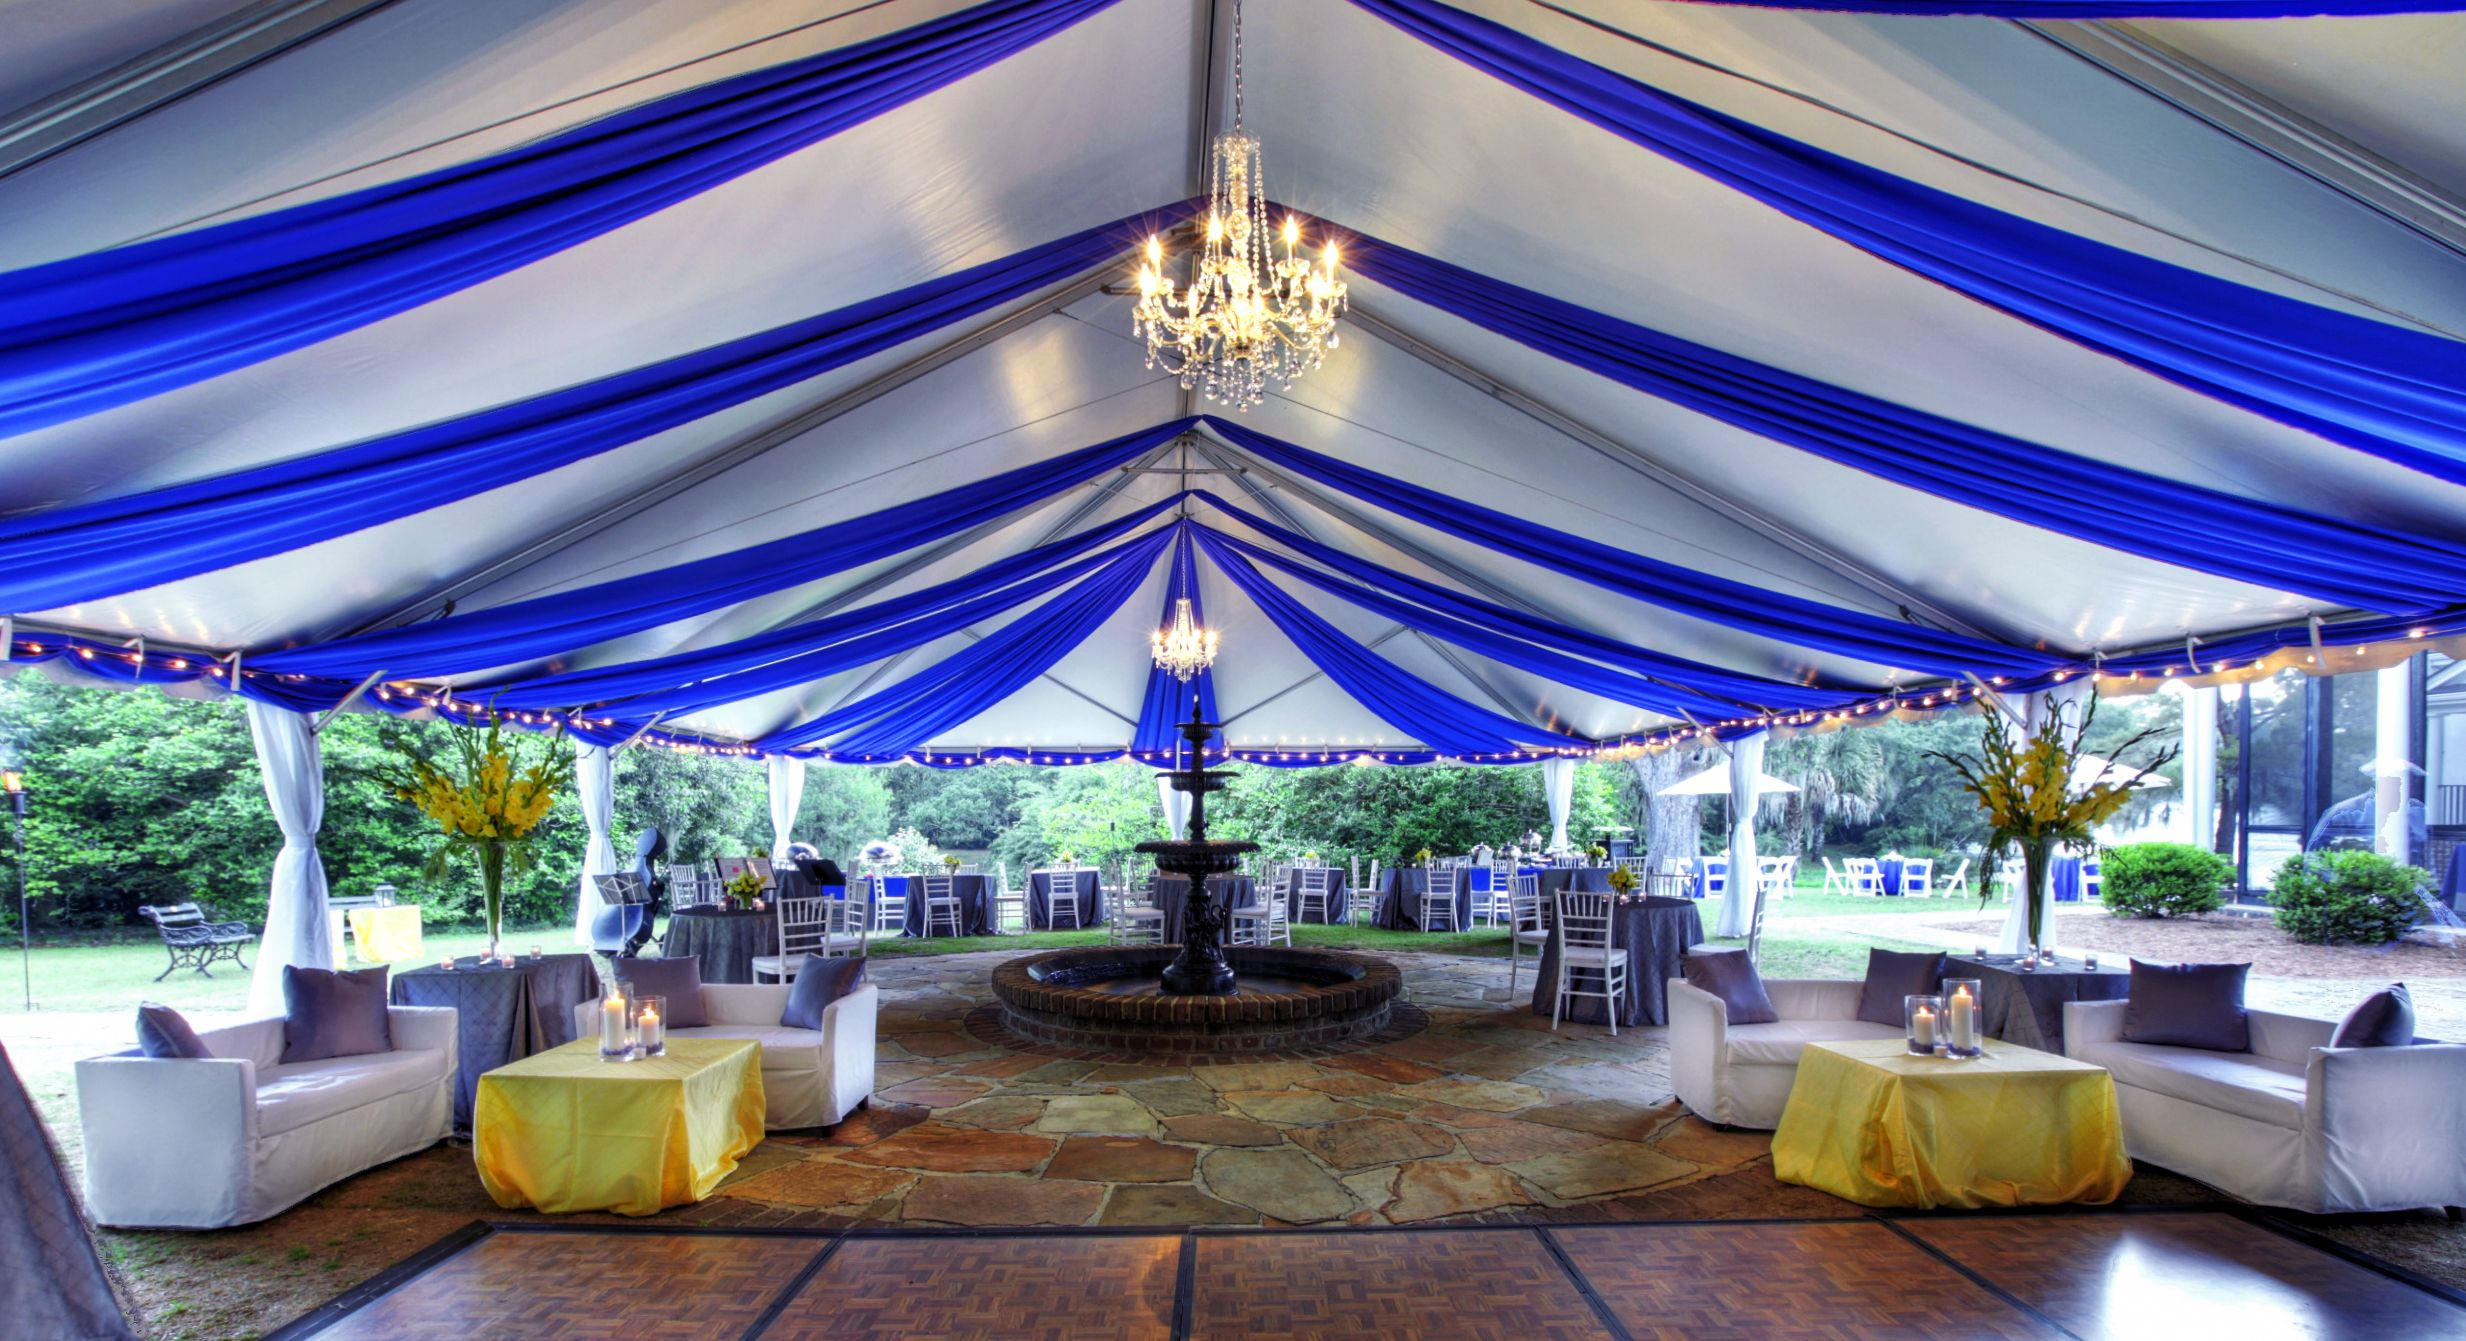 Wedding Planners Charleston Sc Event Planning Consultants Ceiling Draping Wedding Luxury Wedding Planner Ceiling Draping